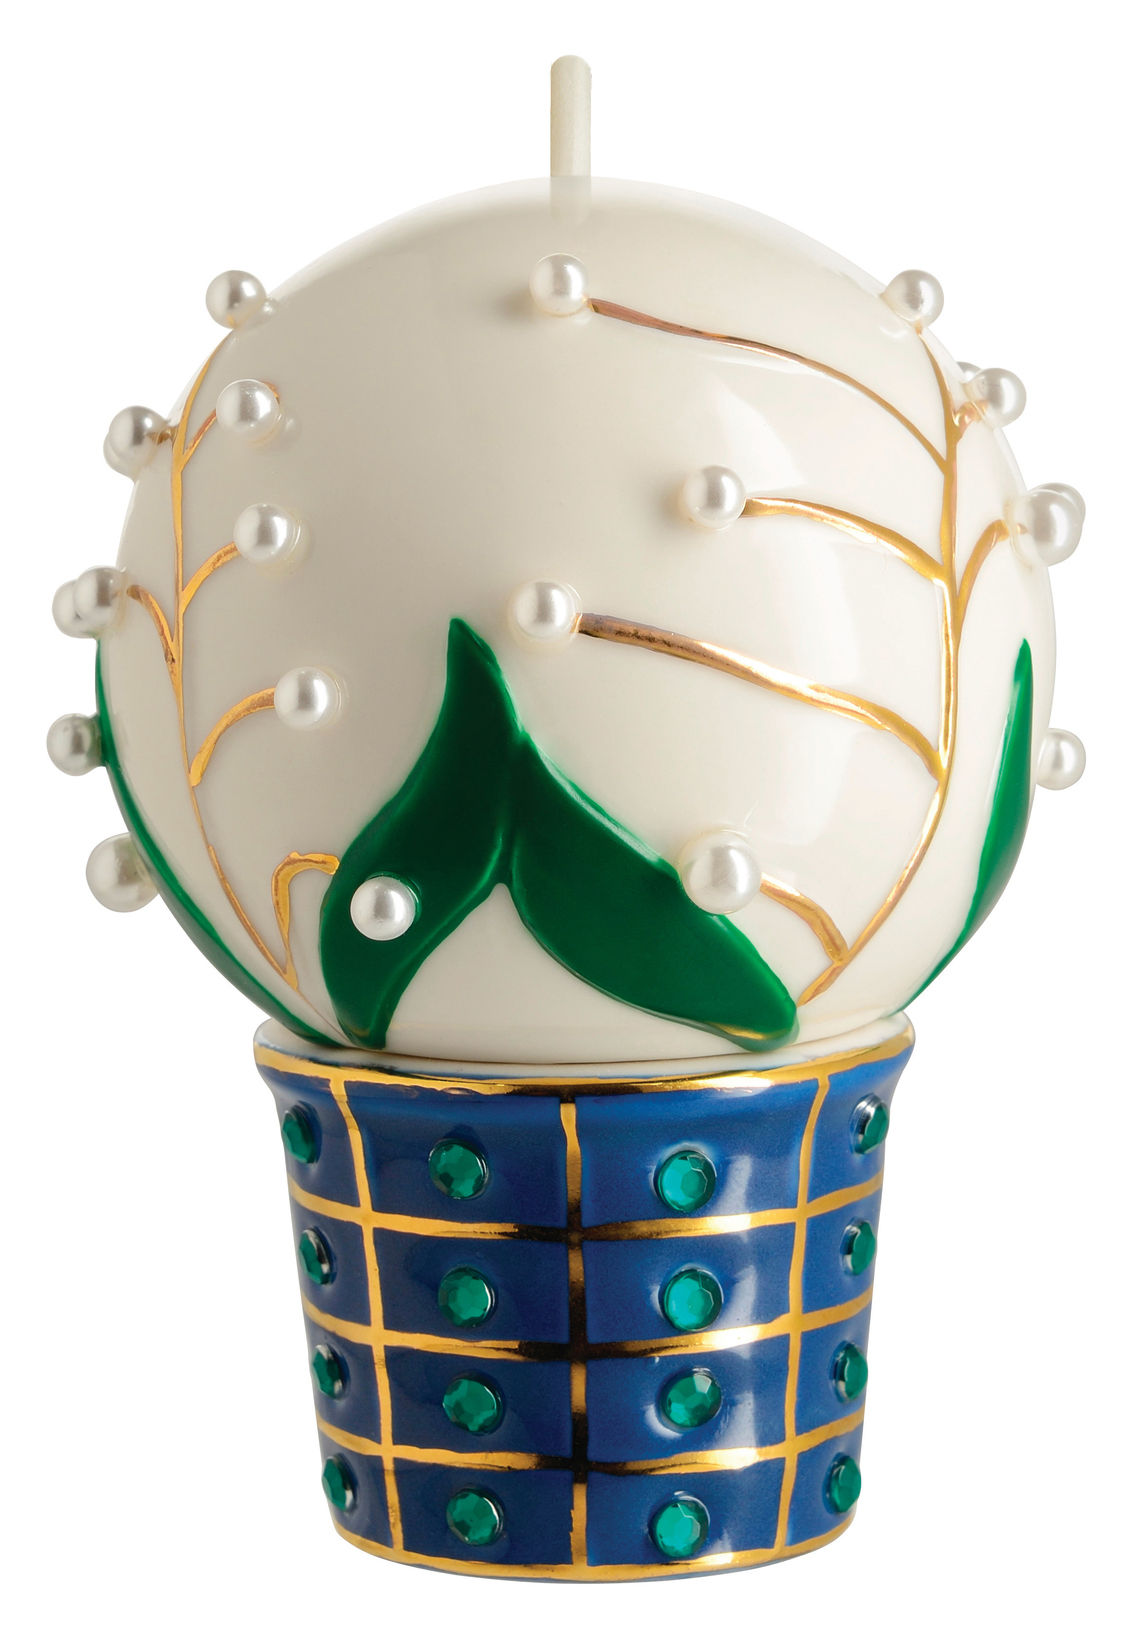 Decoration - Home Accessories - Fleurs de Jorì Bauble - / Lily of the valley - Hand-painted porcelain by Alessi - Lily of the valley - China